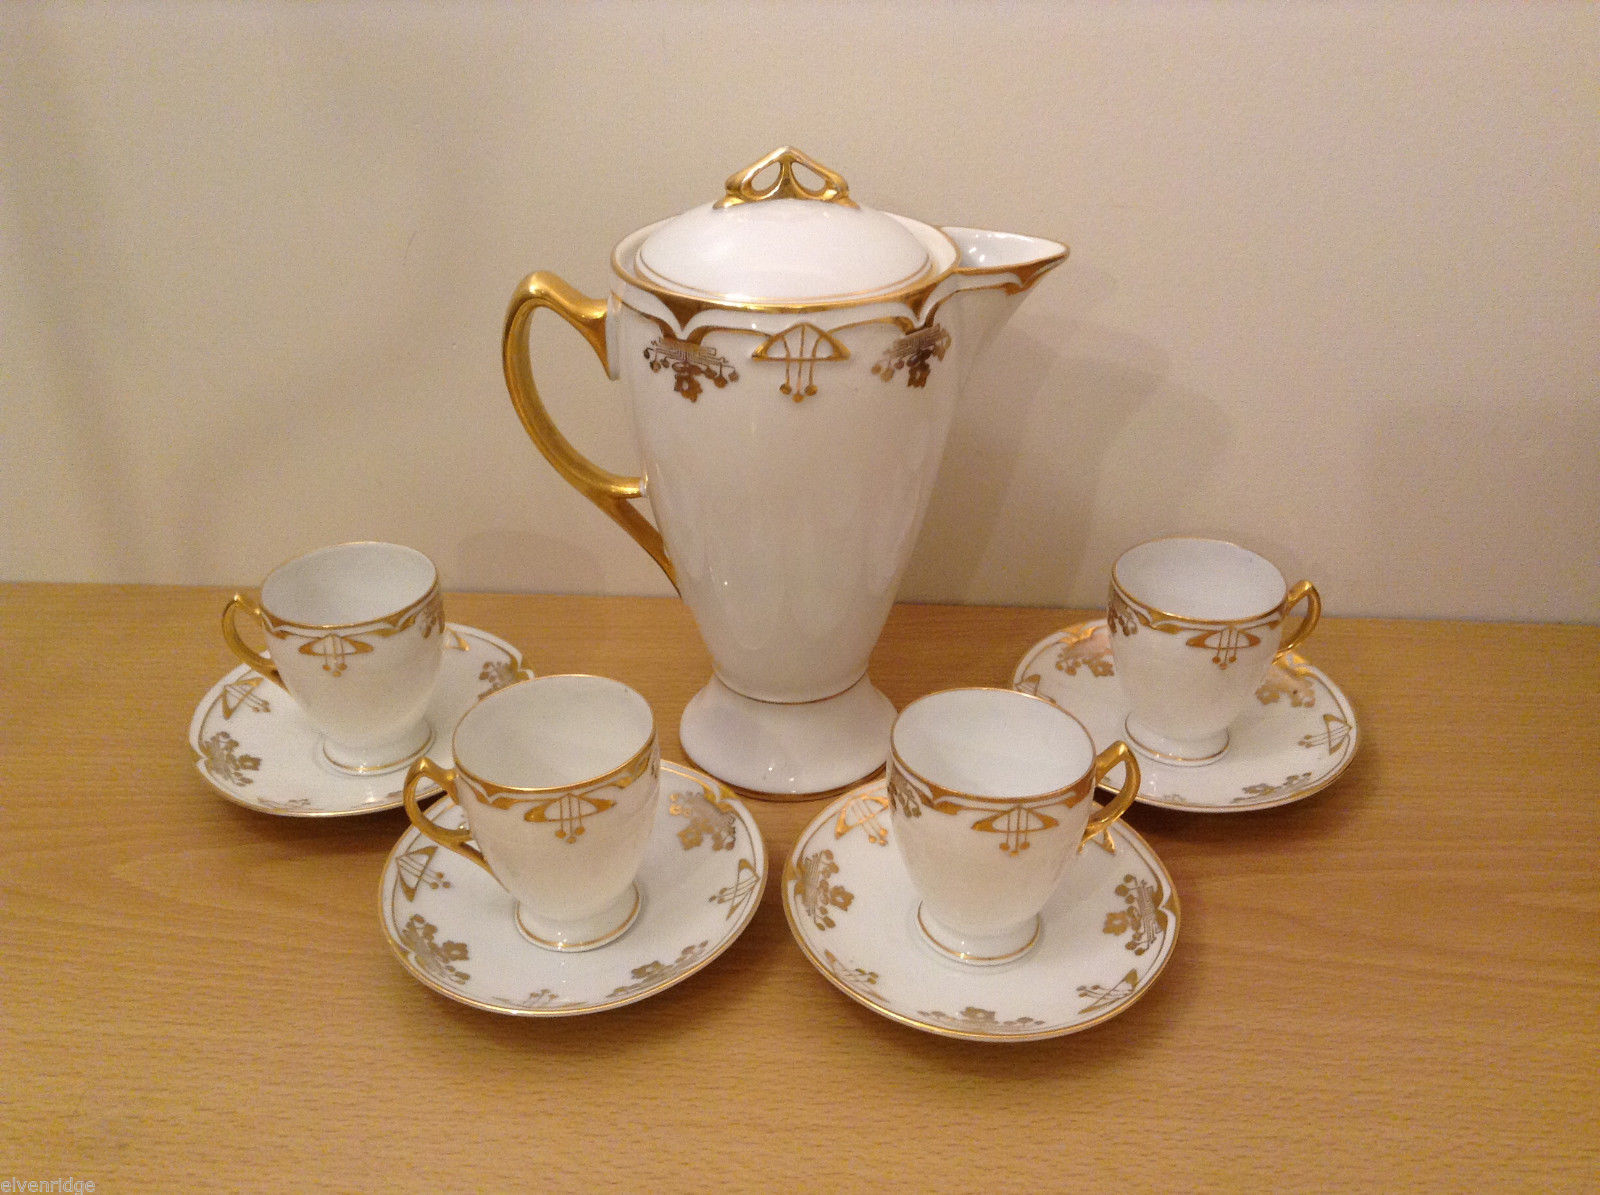 Antique 1910's Fine China Coffee Set White and Gold Secessionist Style PRUSSIAN